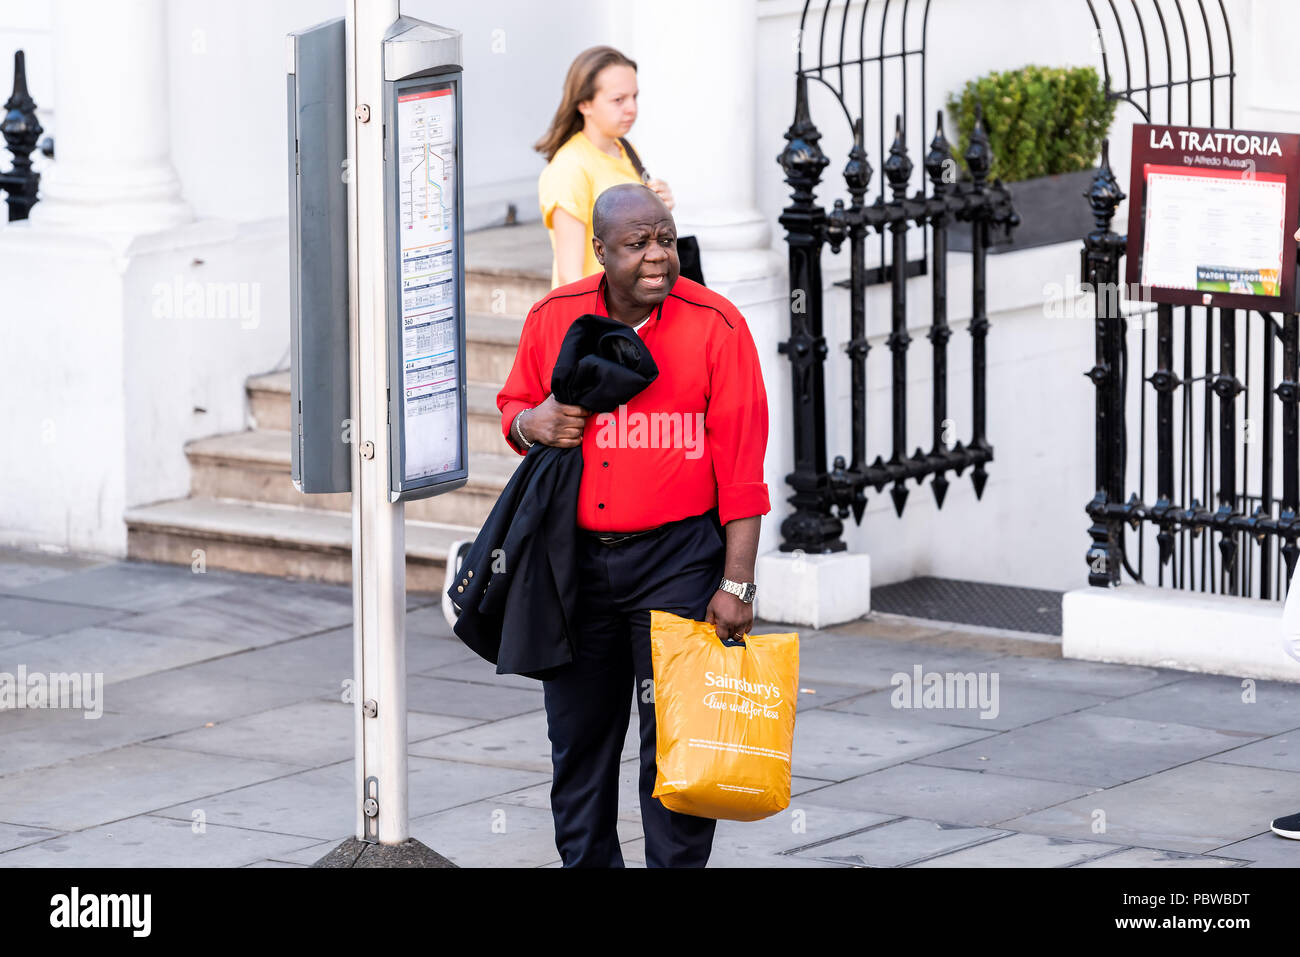 London, UK - June 22, 2018: Neighborhood district of South Kensington man carrying Sainsbury's grocery shopping bags waiting to cross street, bus stop - Stock Image